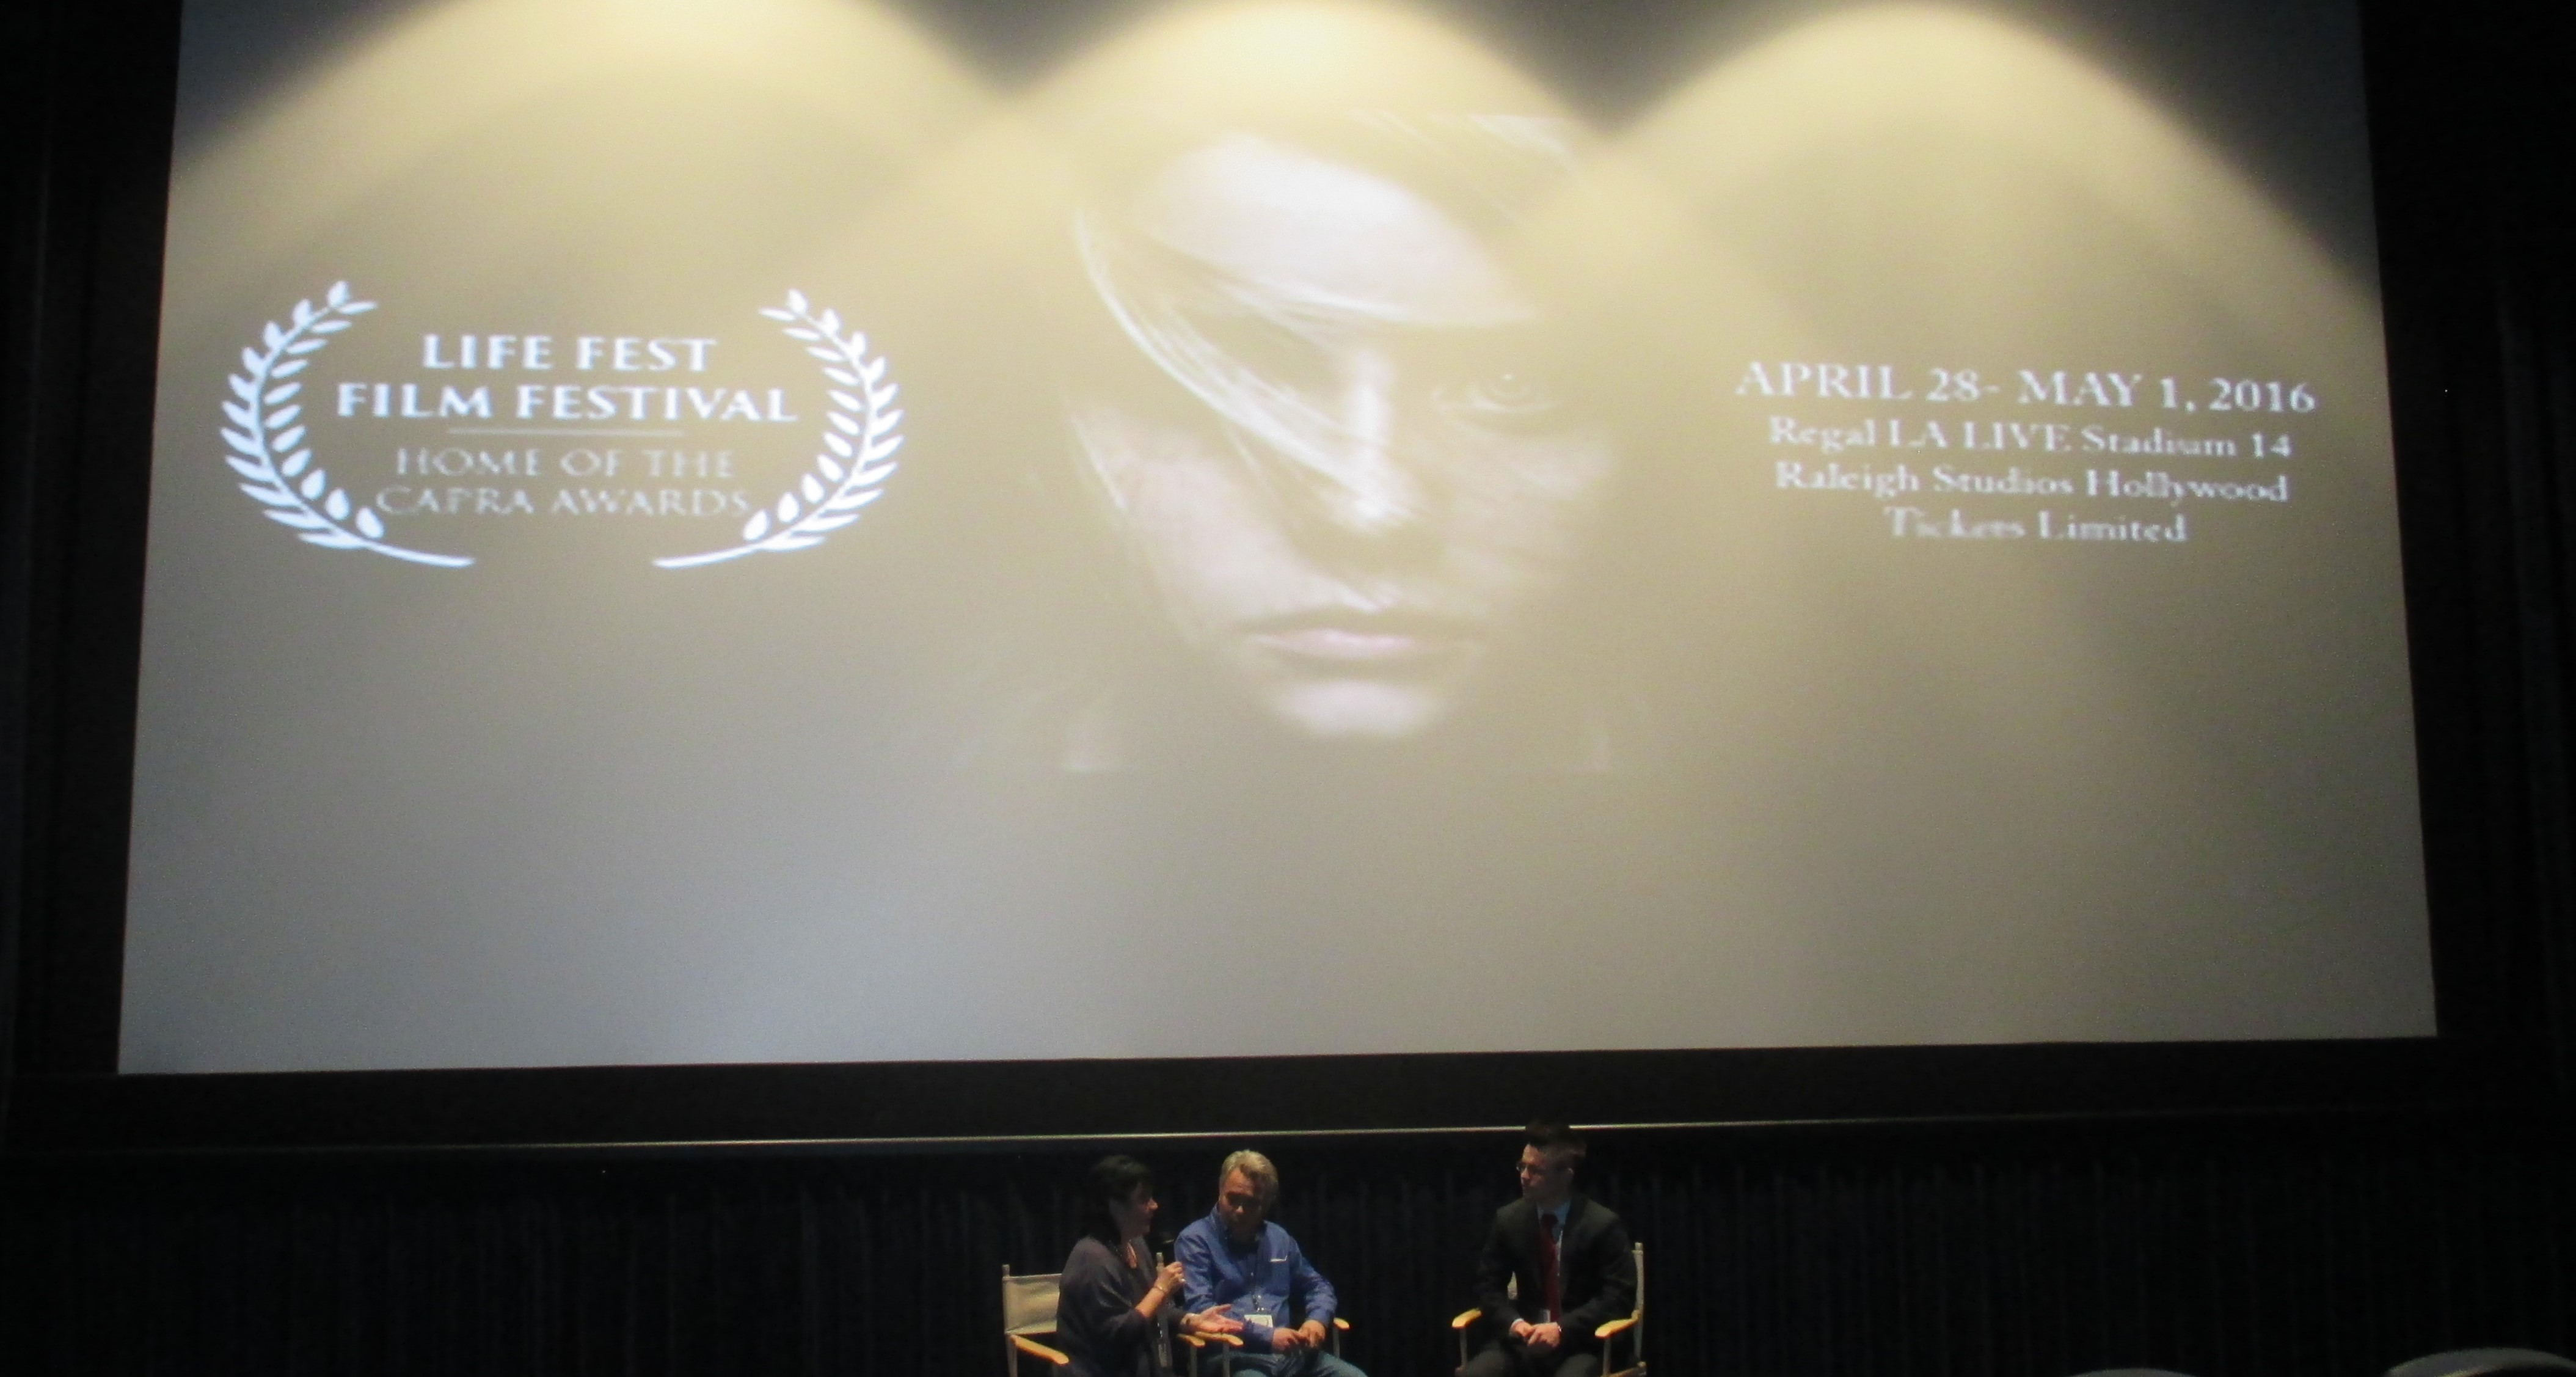 Leo and Charlie Q and A Life fest Film Festival 2016